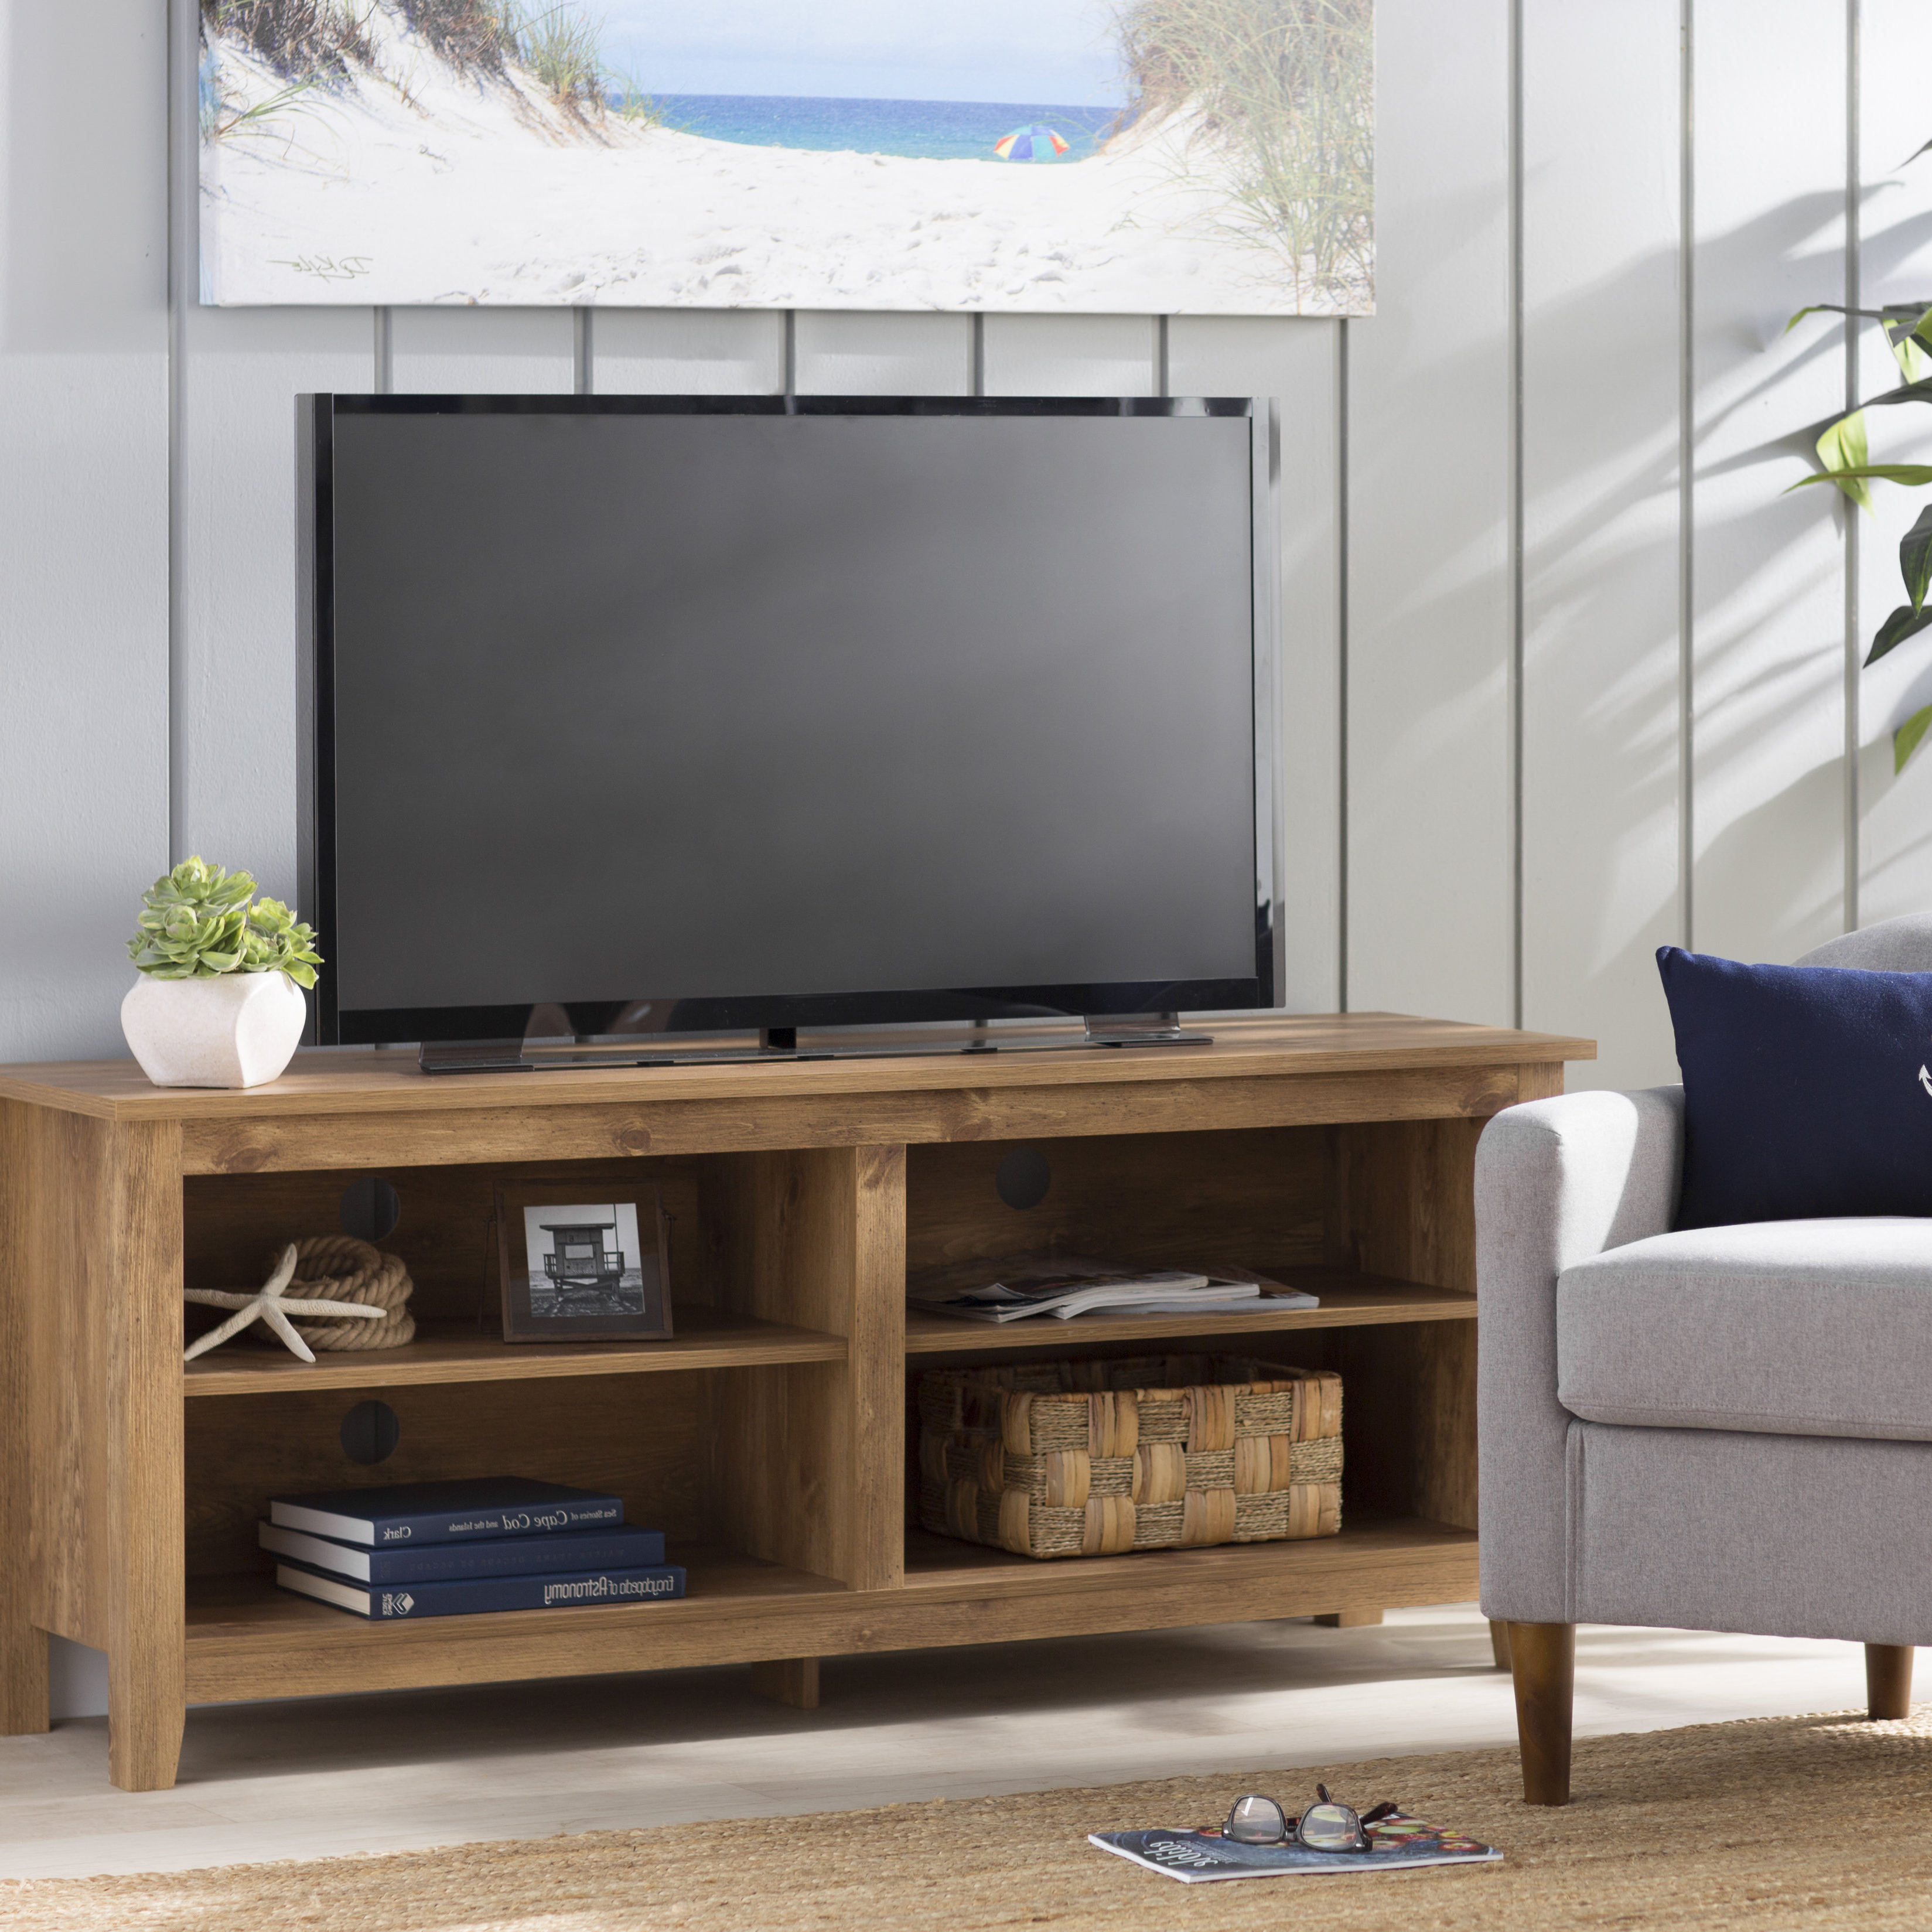 Tv Stand For 75 Inch Tv | Wayfair For Laurent 50 Inch Tv Stands (Gallery 10 of 20)